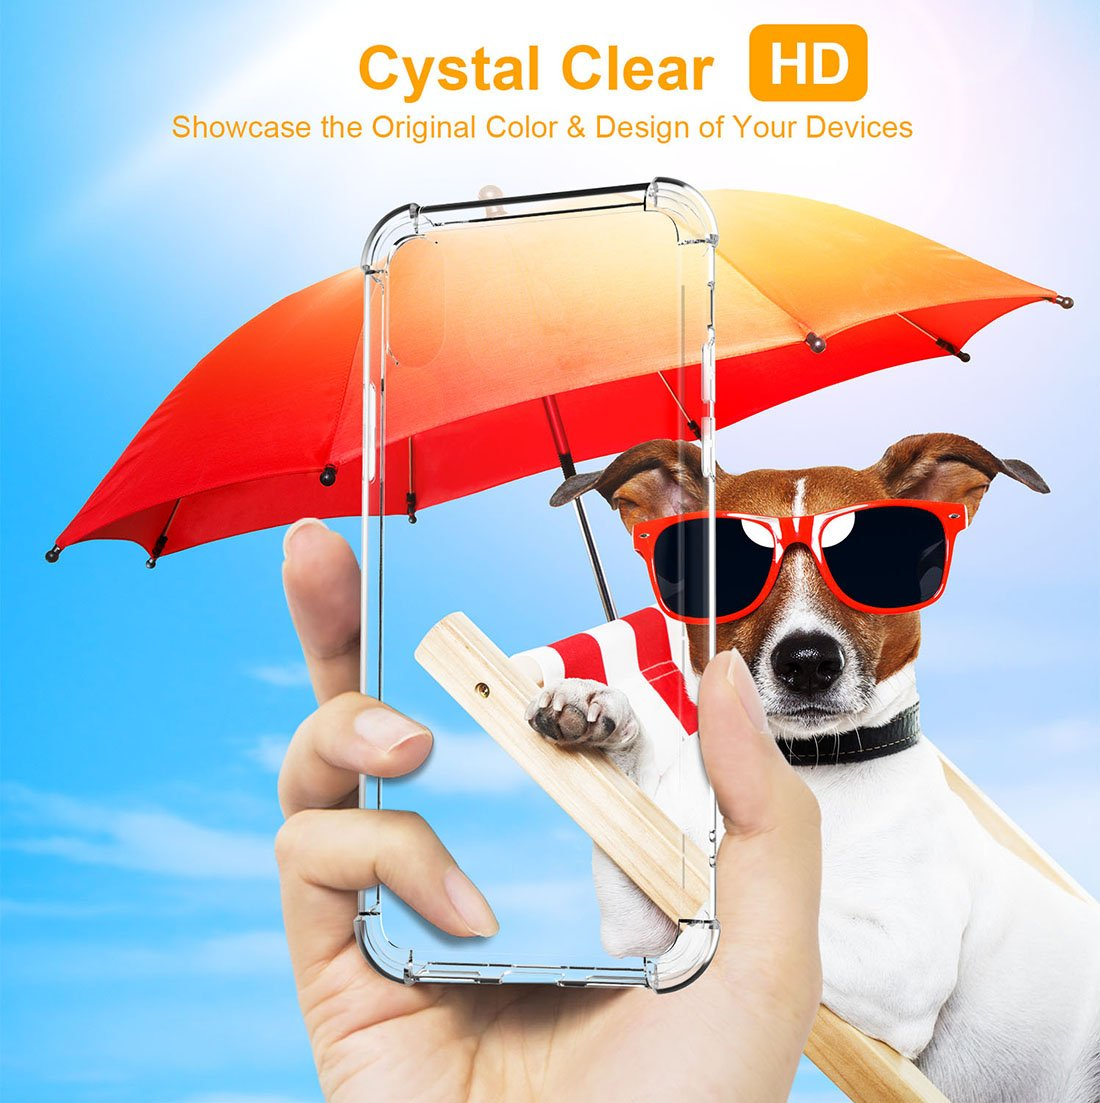 iPhone X Case,CLONG iPhone X Crystal Clear Shockproof Protective Cover Transparent Soft TPU Gel Cases for Apple iPhone X (2017) 5.8\